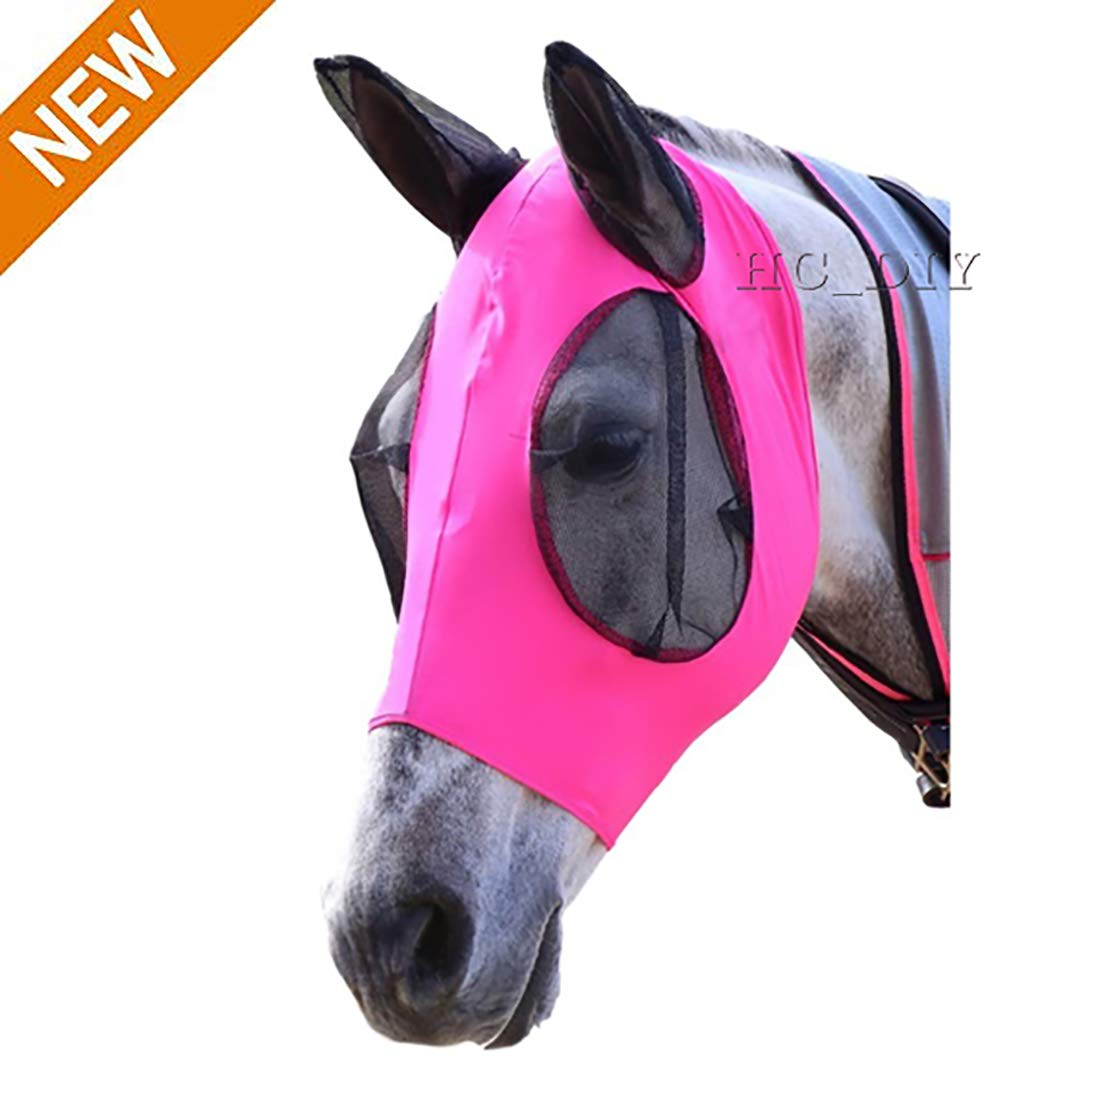 Horse Fly Mask, Fit Horse & Arab Size Fly Mask Professional Comfort Lycra Fly Mask with Mesh Eyes and Ears (Pink) by HCDIM